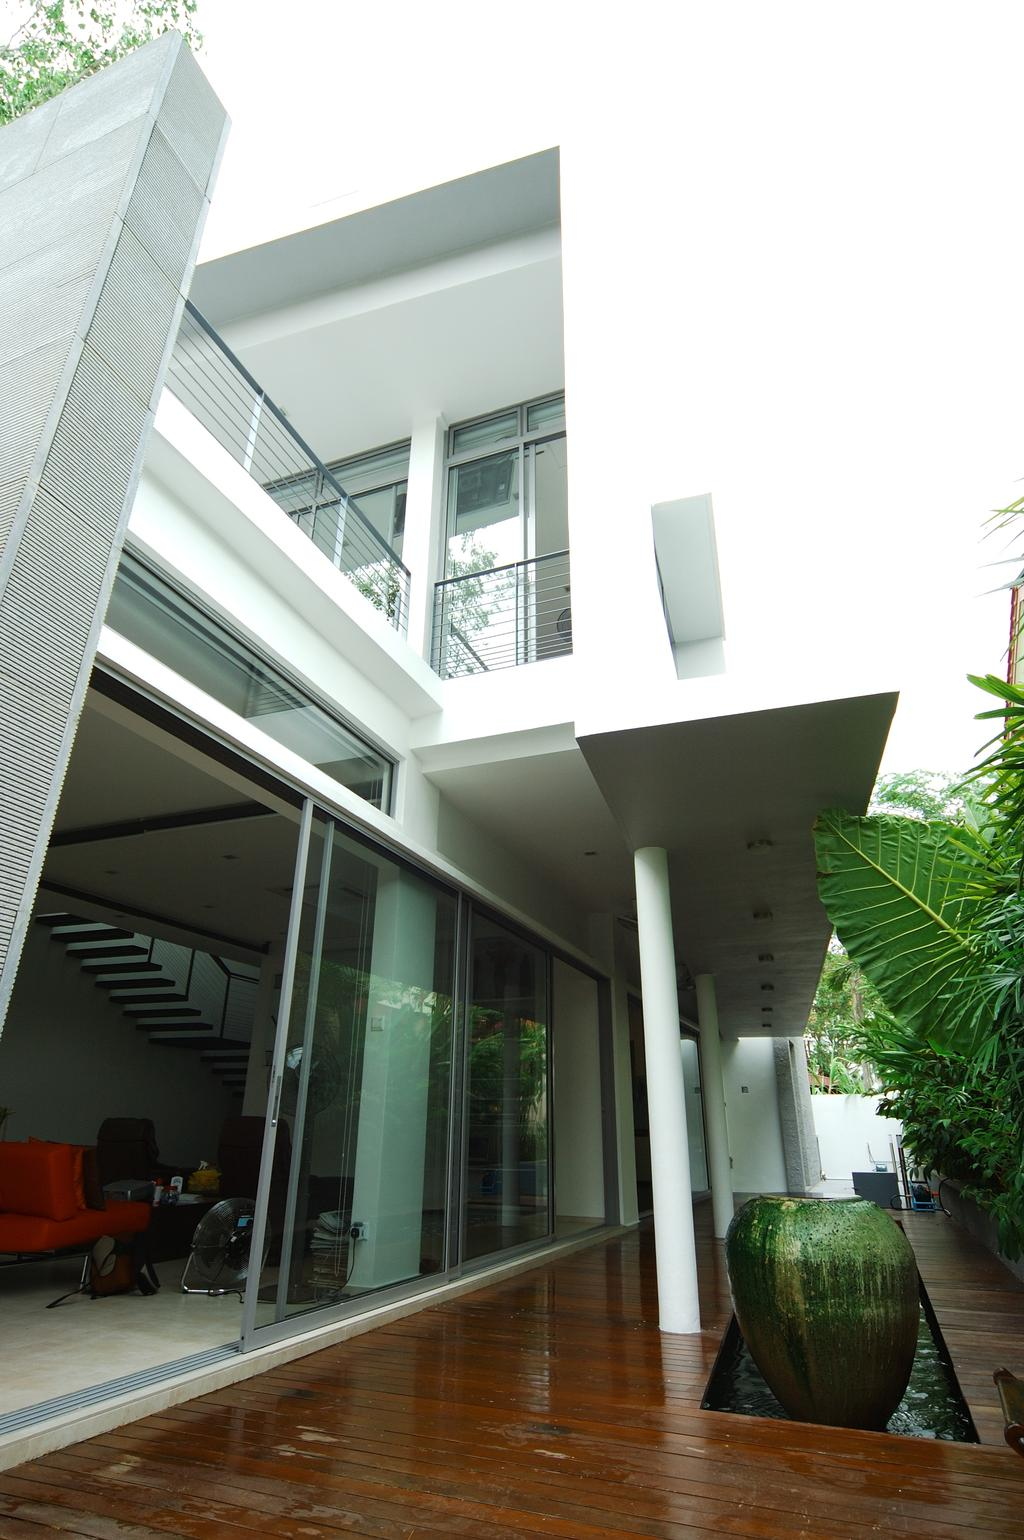 Contemporary, Landed, Pergam Residence, Architect, GK Architects, Architecture, Building, Skylight, Window, Column, Pillar